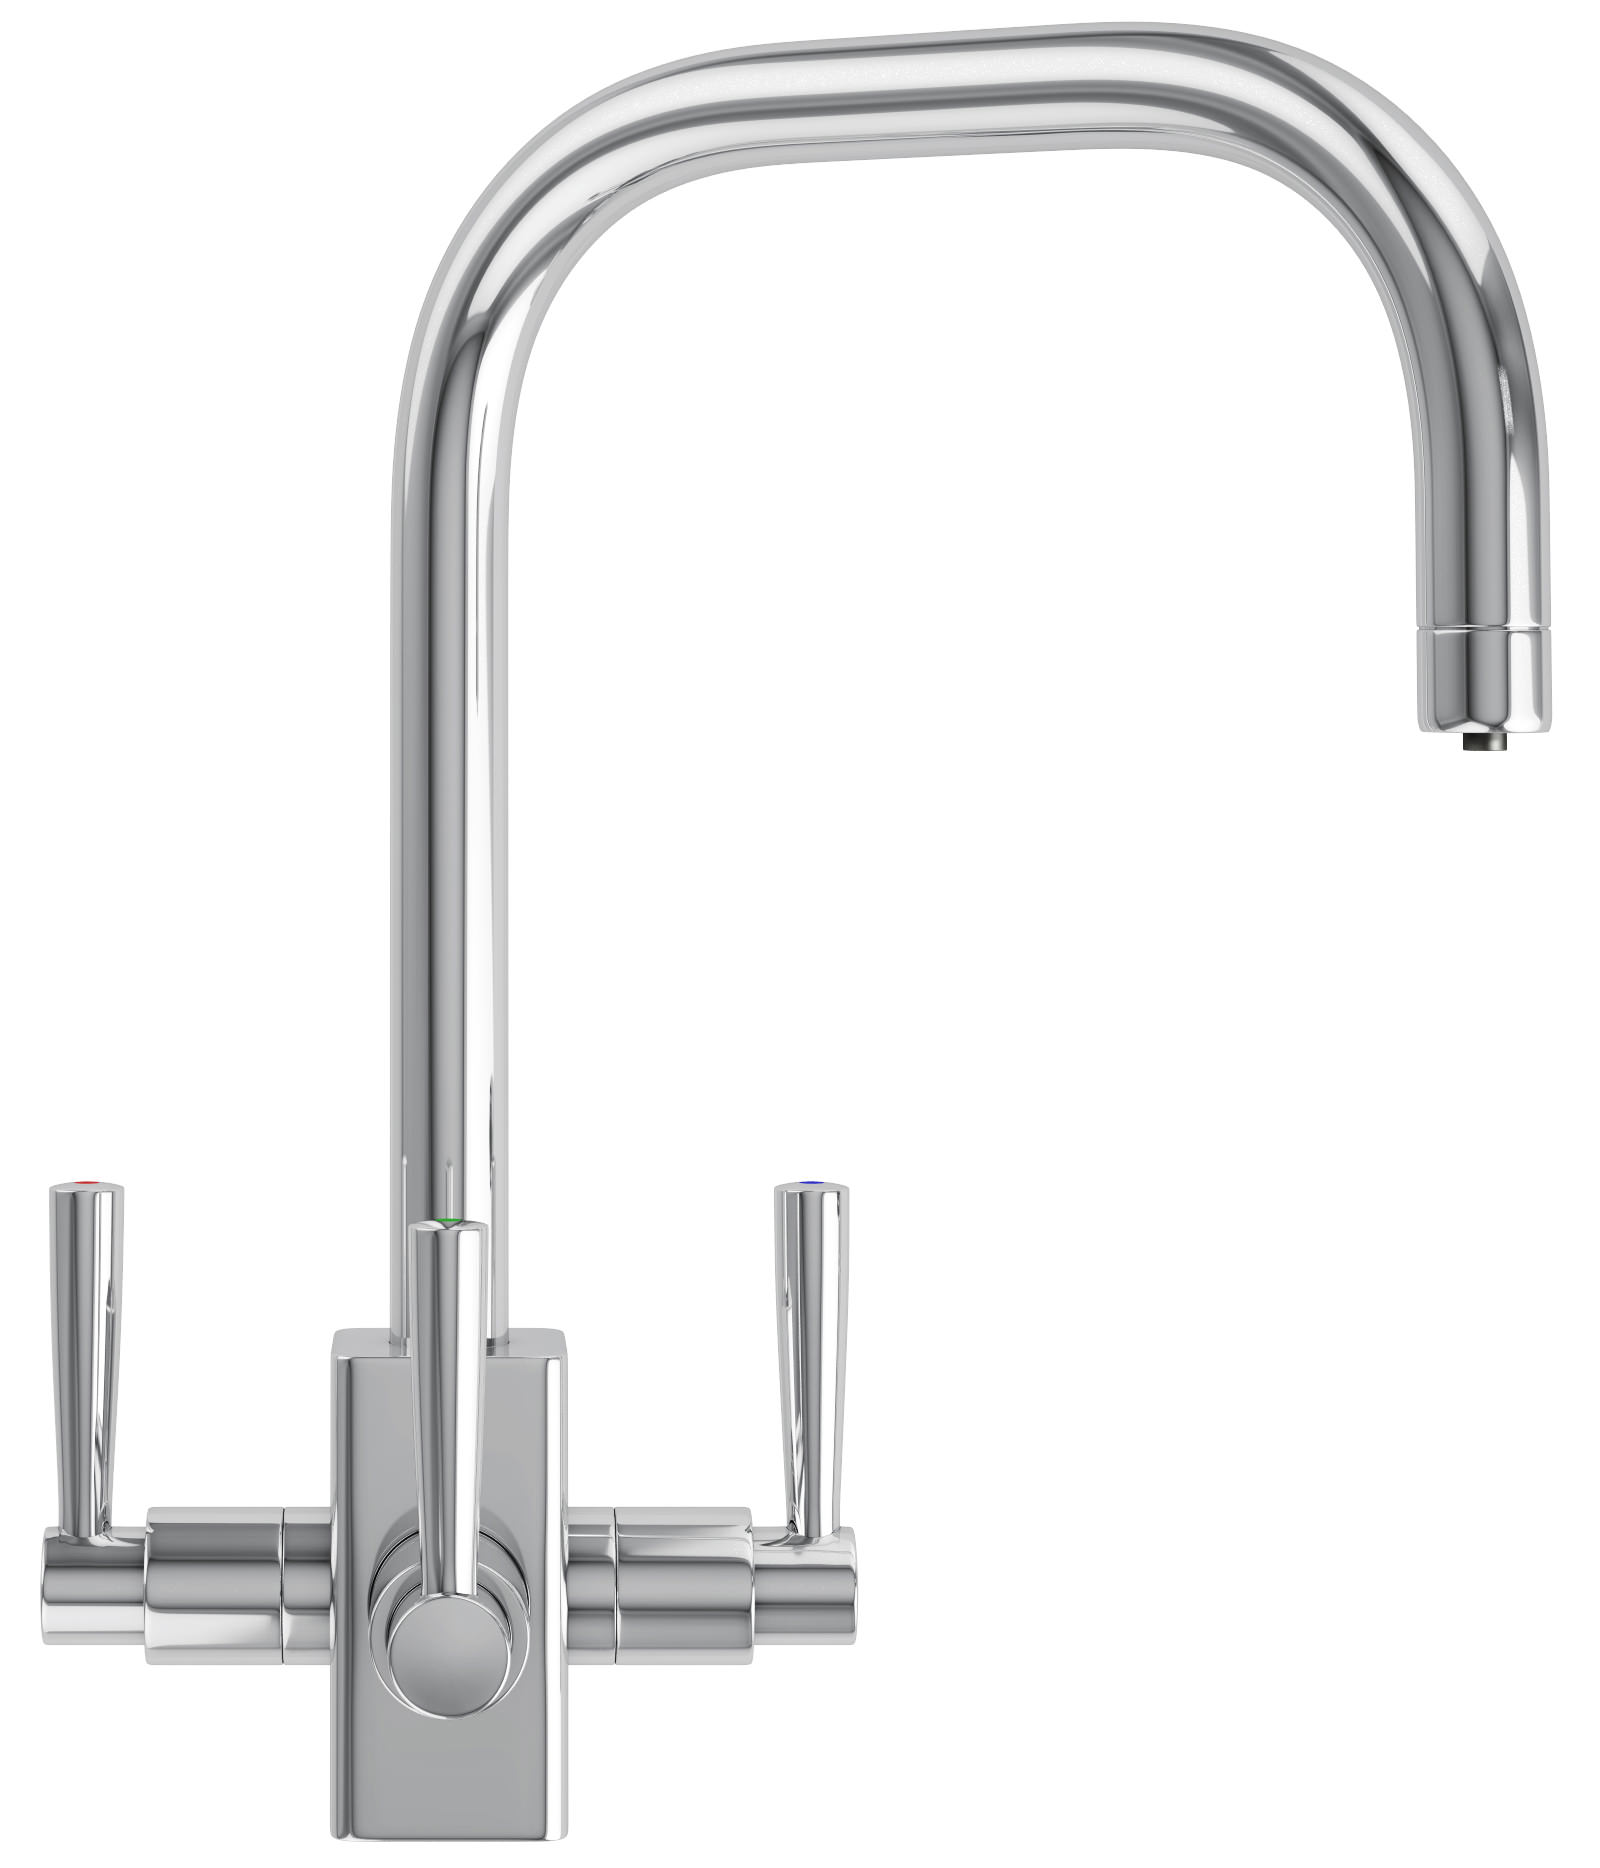 franke filterflow kubus kitchen sink tap chrome 120 0180 354